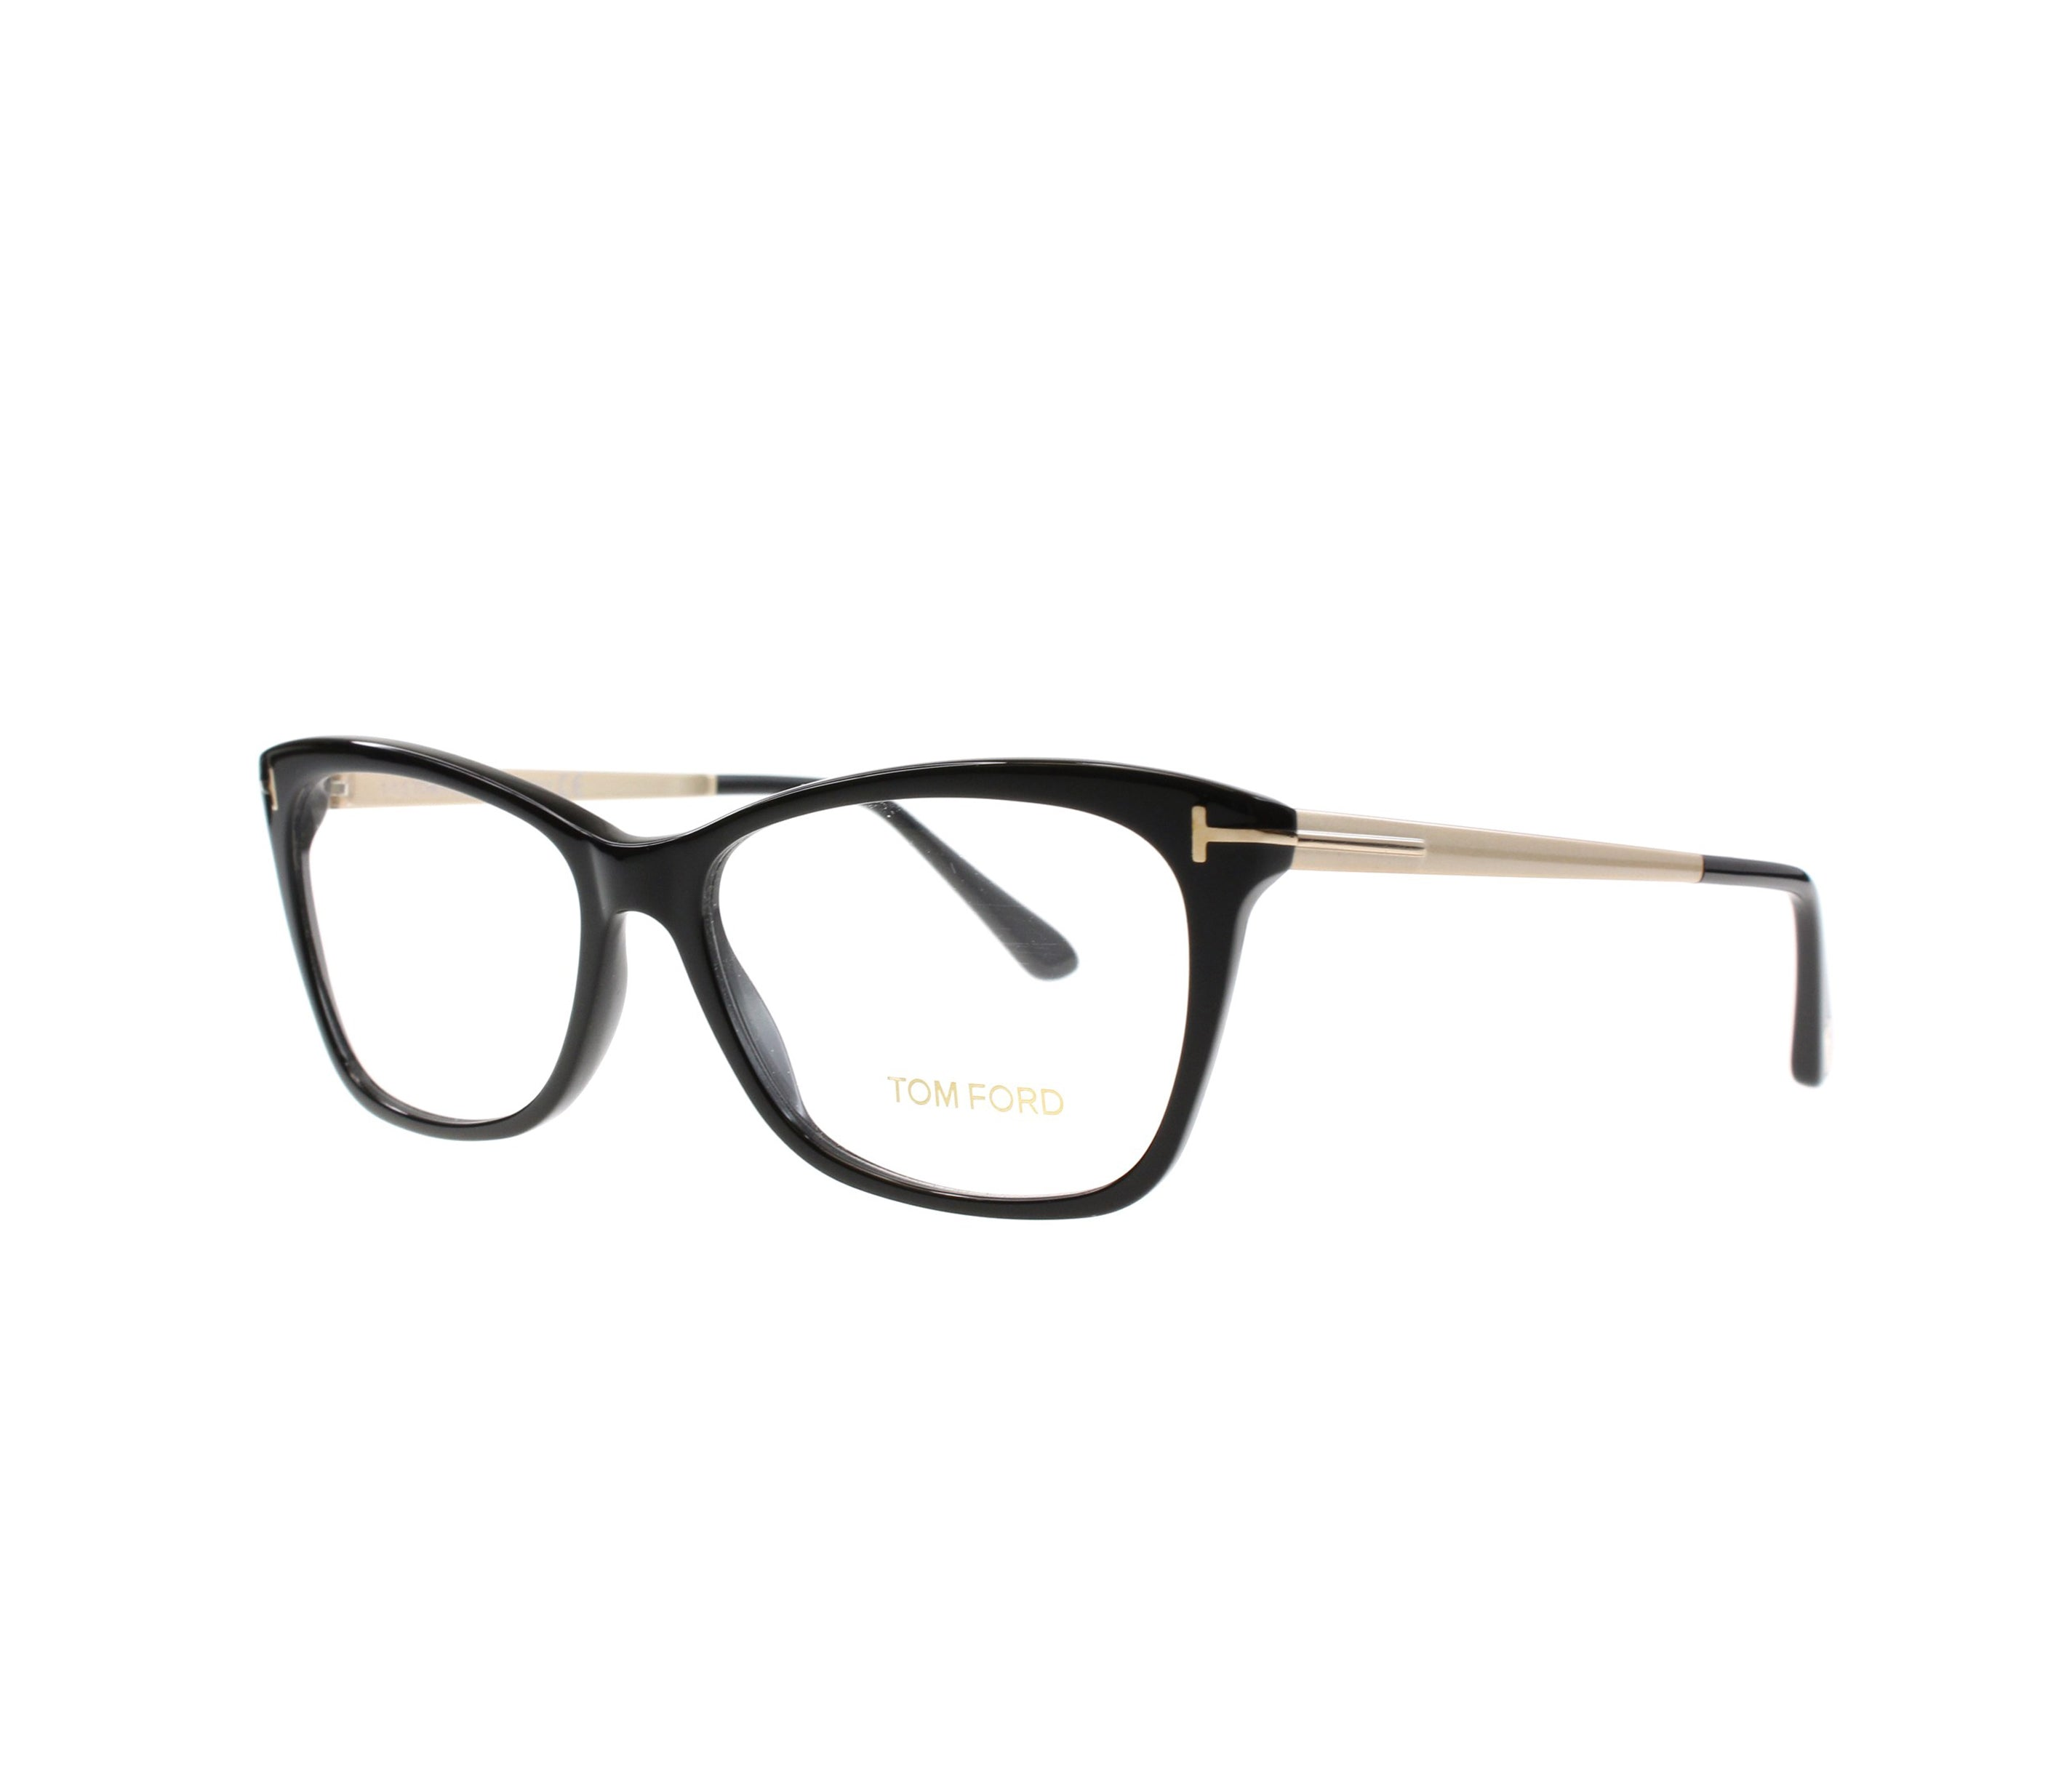 Tom Ford TF5353